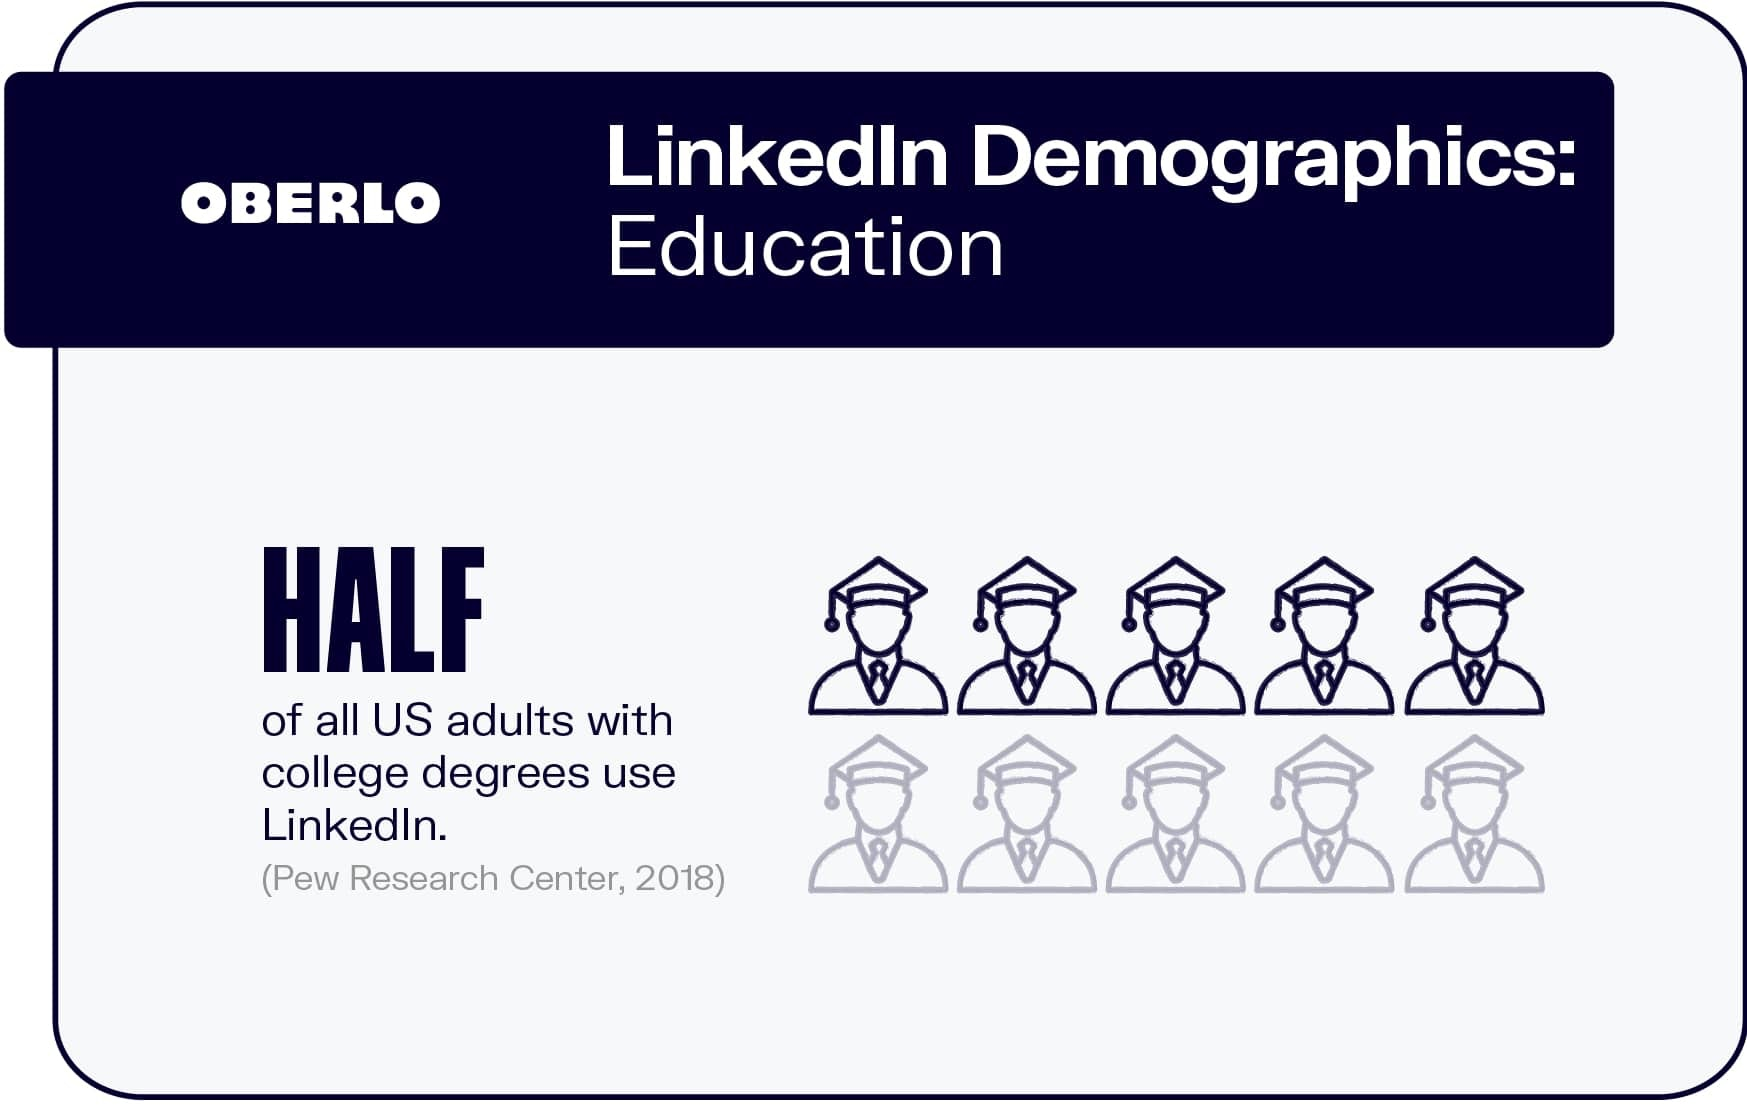 LinkedIn Demographics: Education